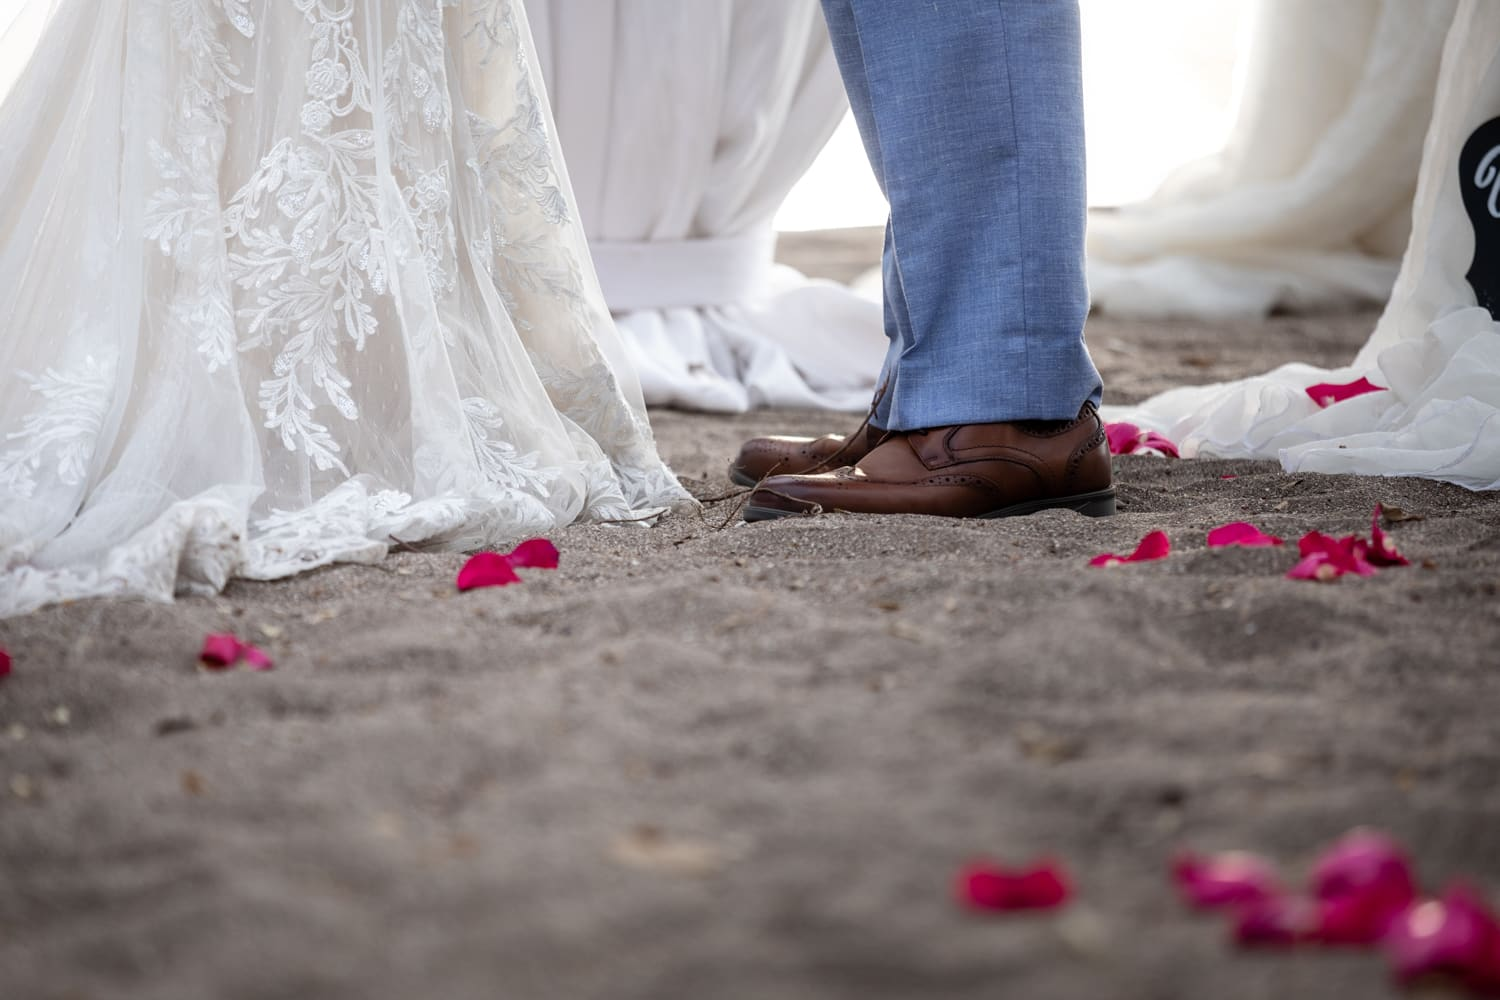 Beach sand aisle with red rose petals.